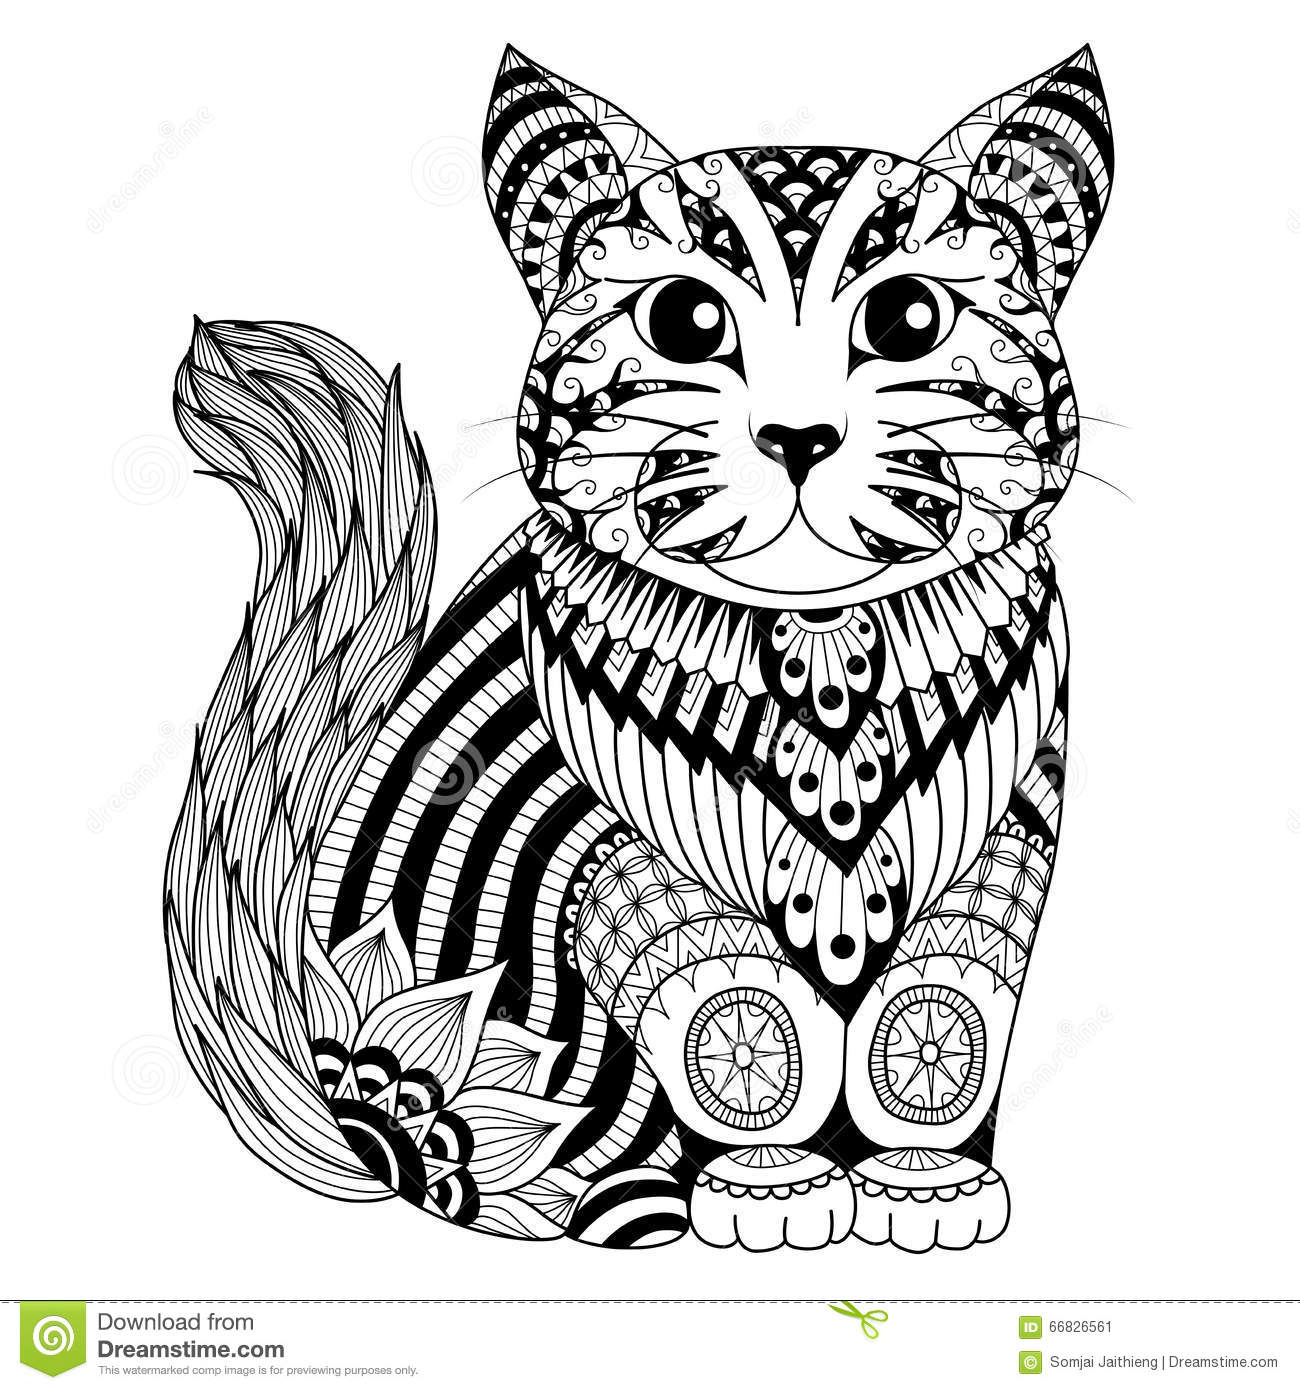 Drawing Zentangle Cat For Coloring Page Shirt Design